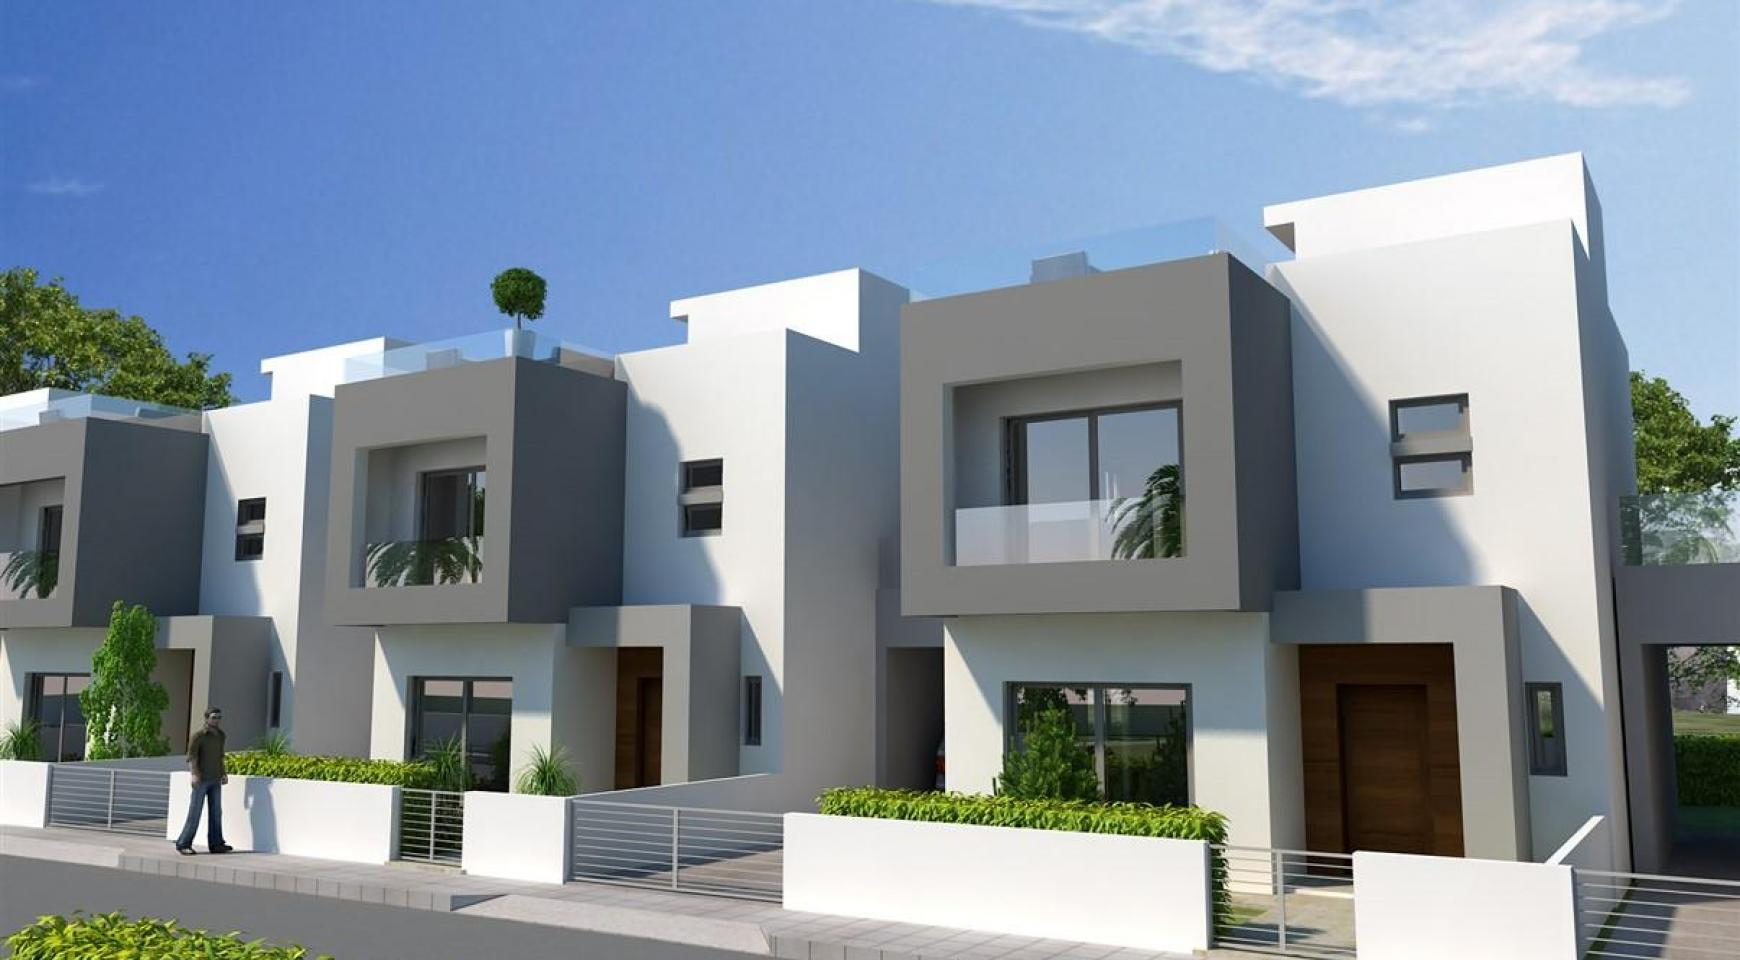 3 Bedroom Villa in New Project in Paphos - 1